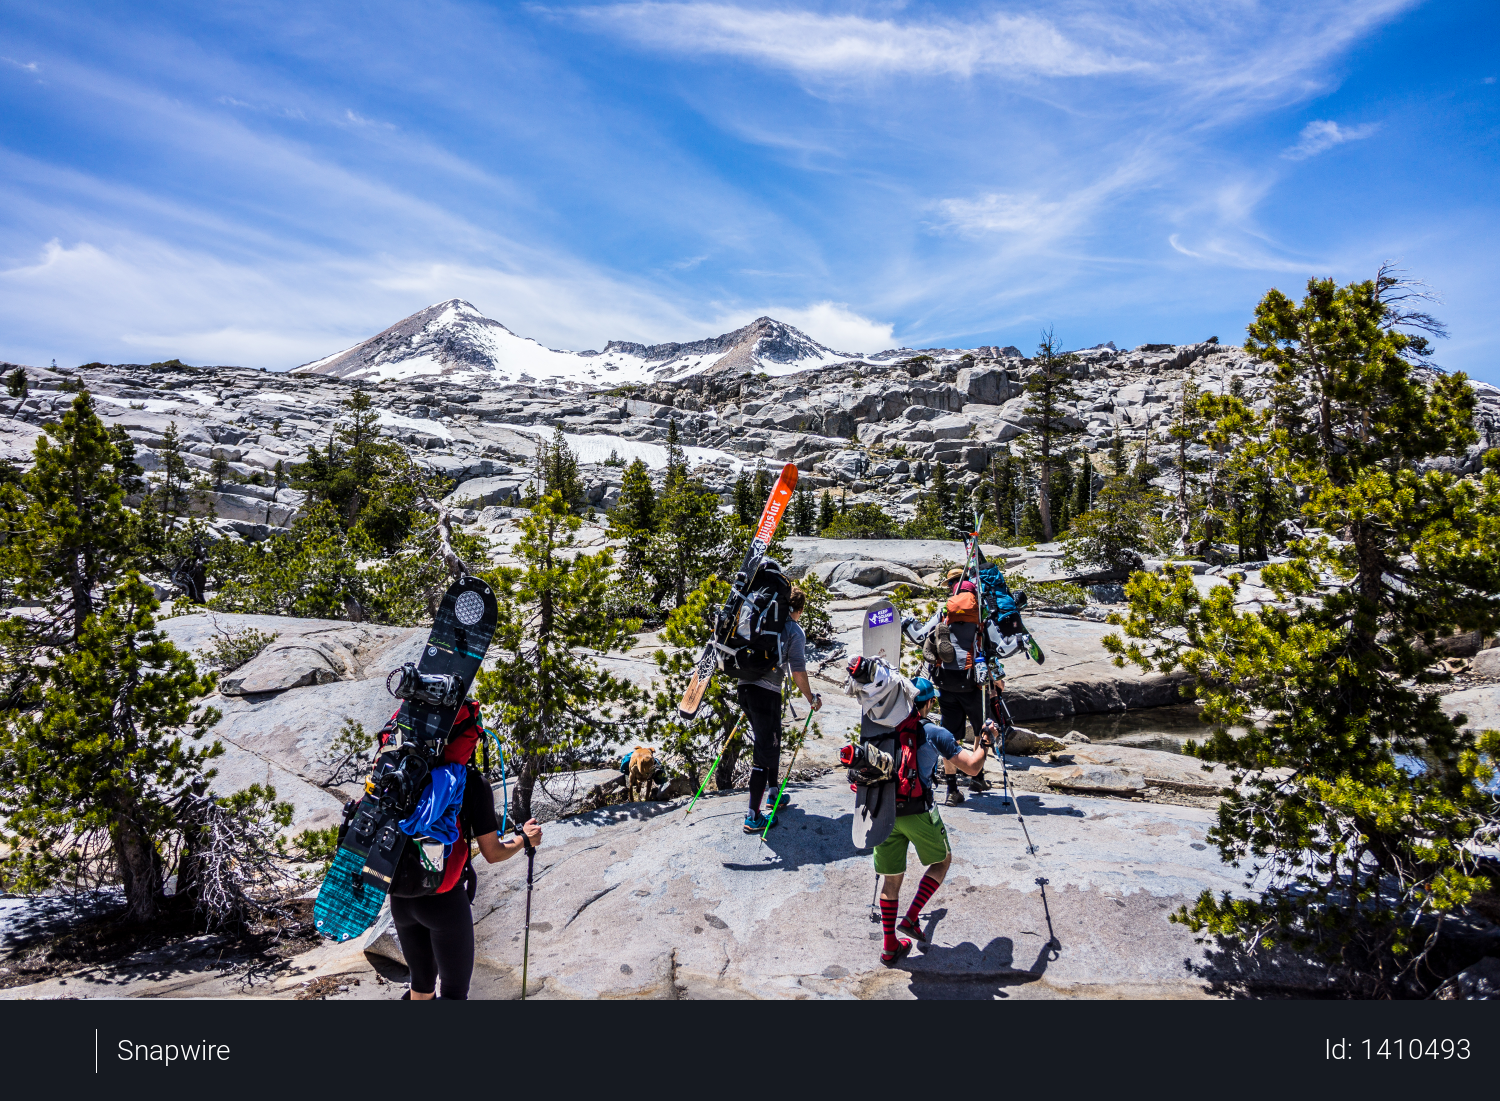 Group of People Hiking With Snowboards Under Blue Cloudy Sky Photo